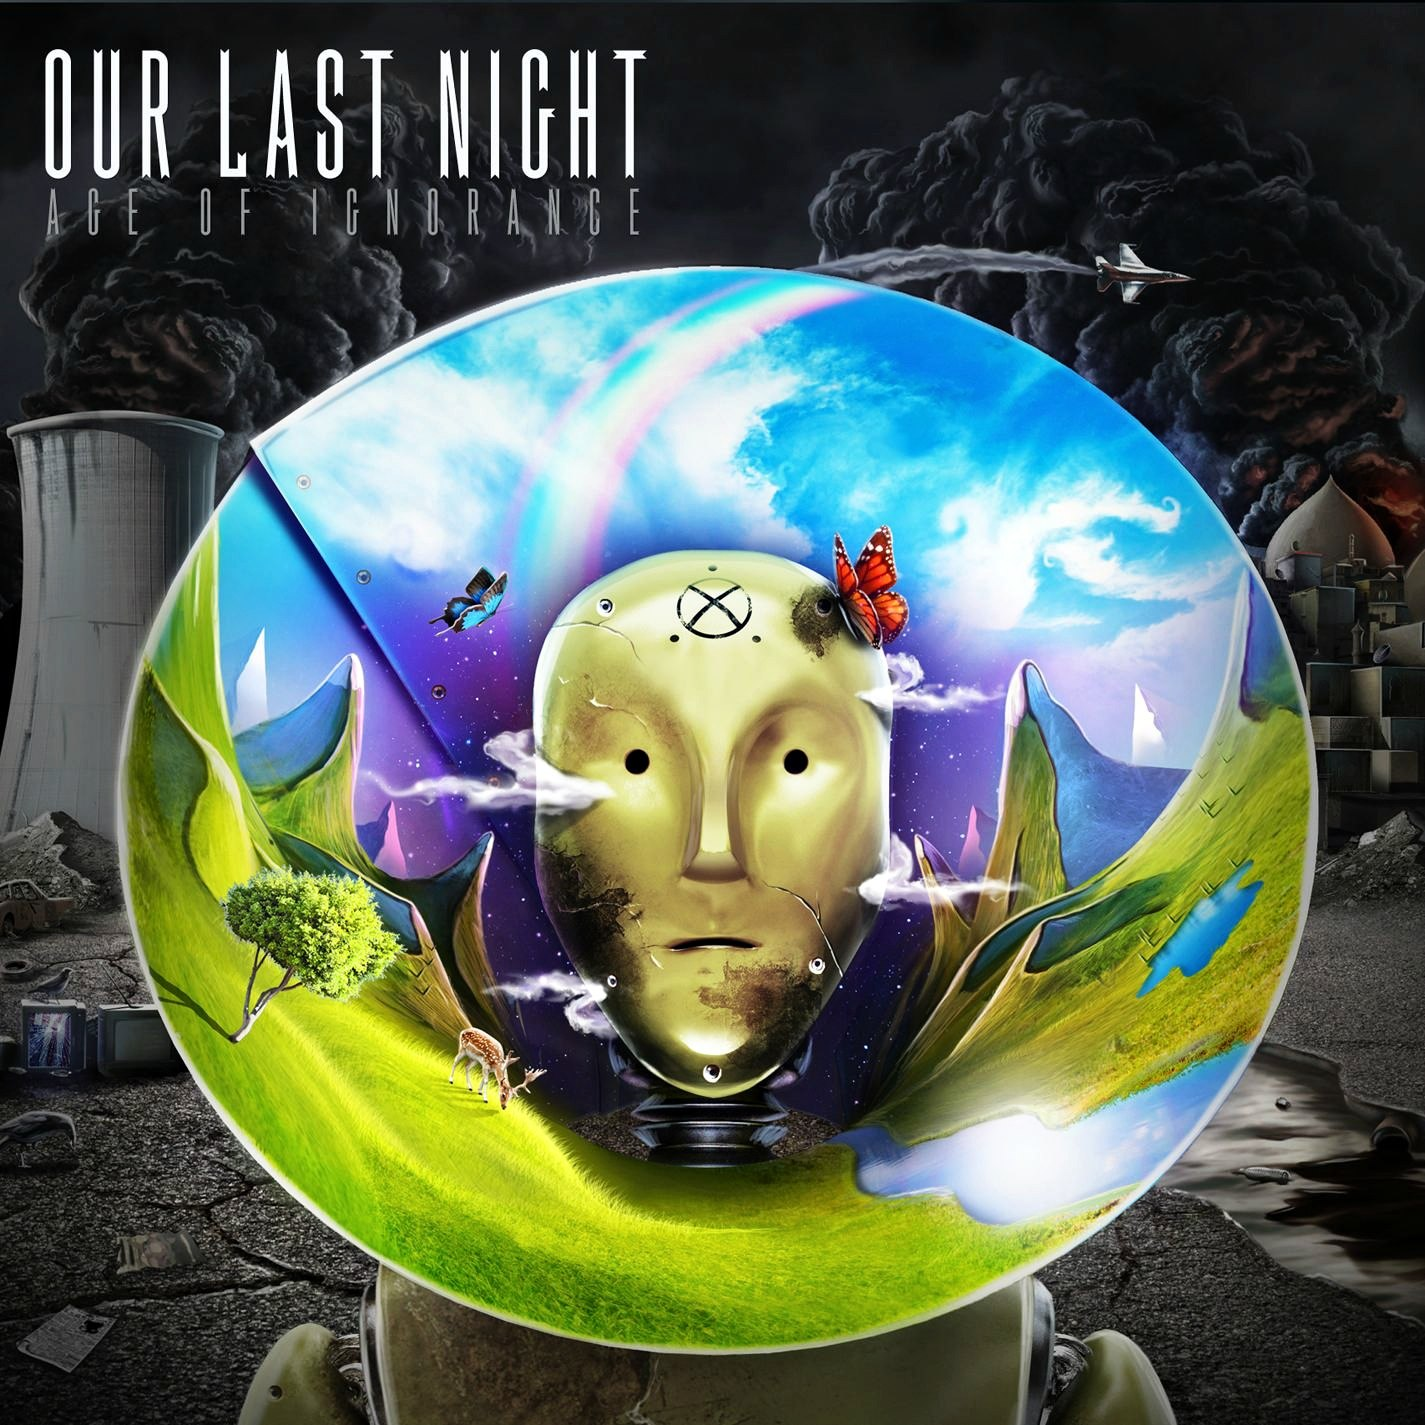 Our Last Night - Age Of Ignorance (Deluxe Edition) (2013)